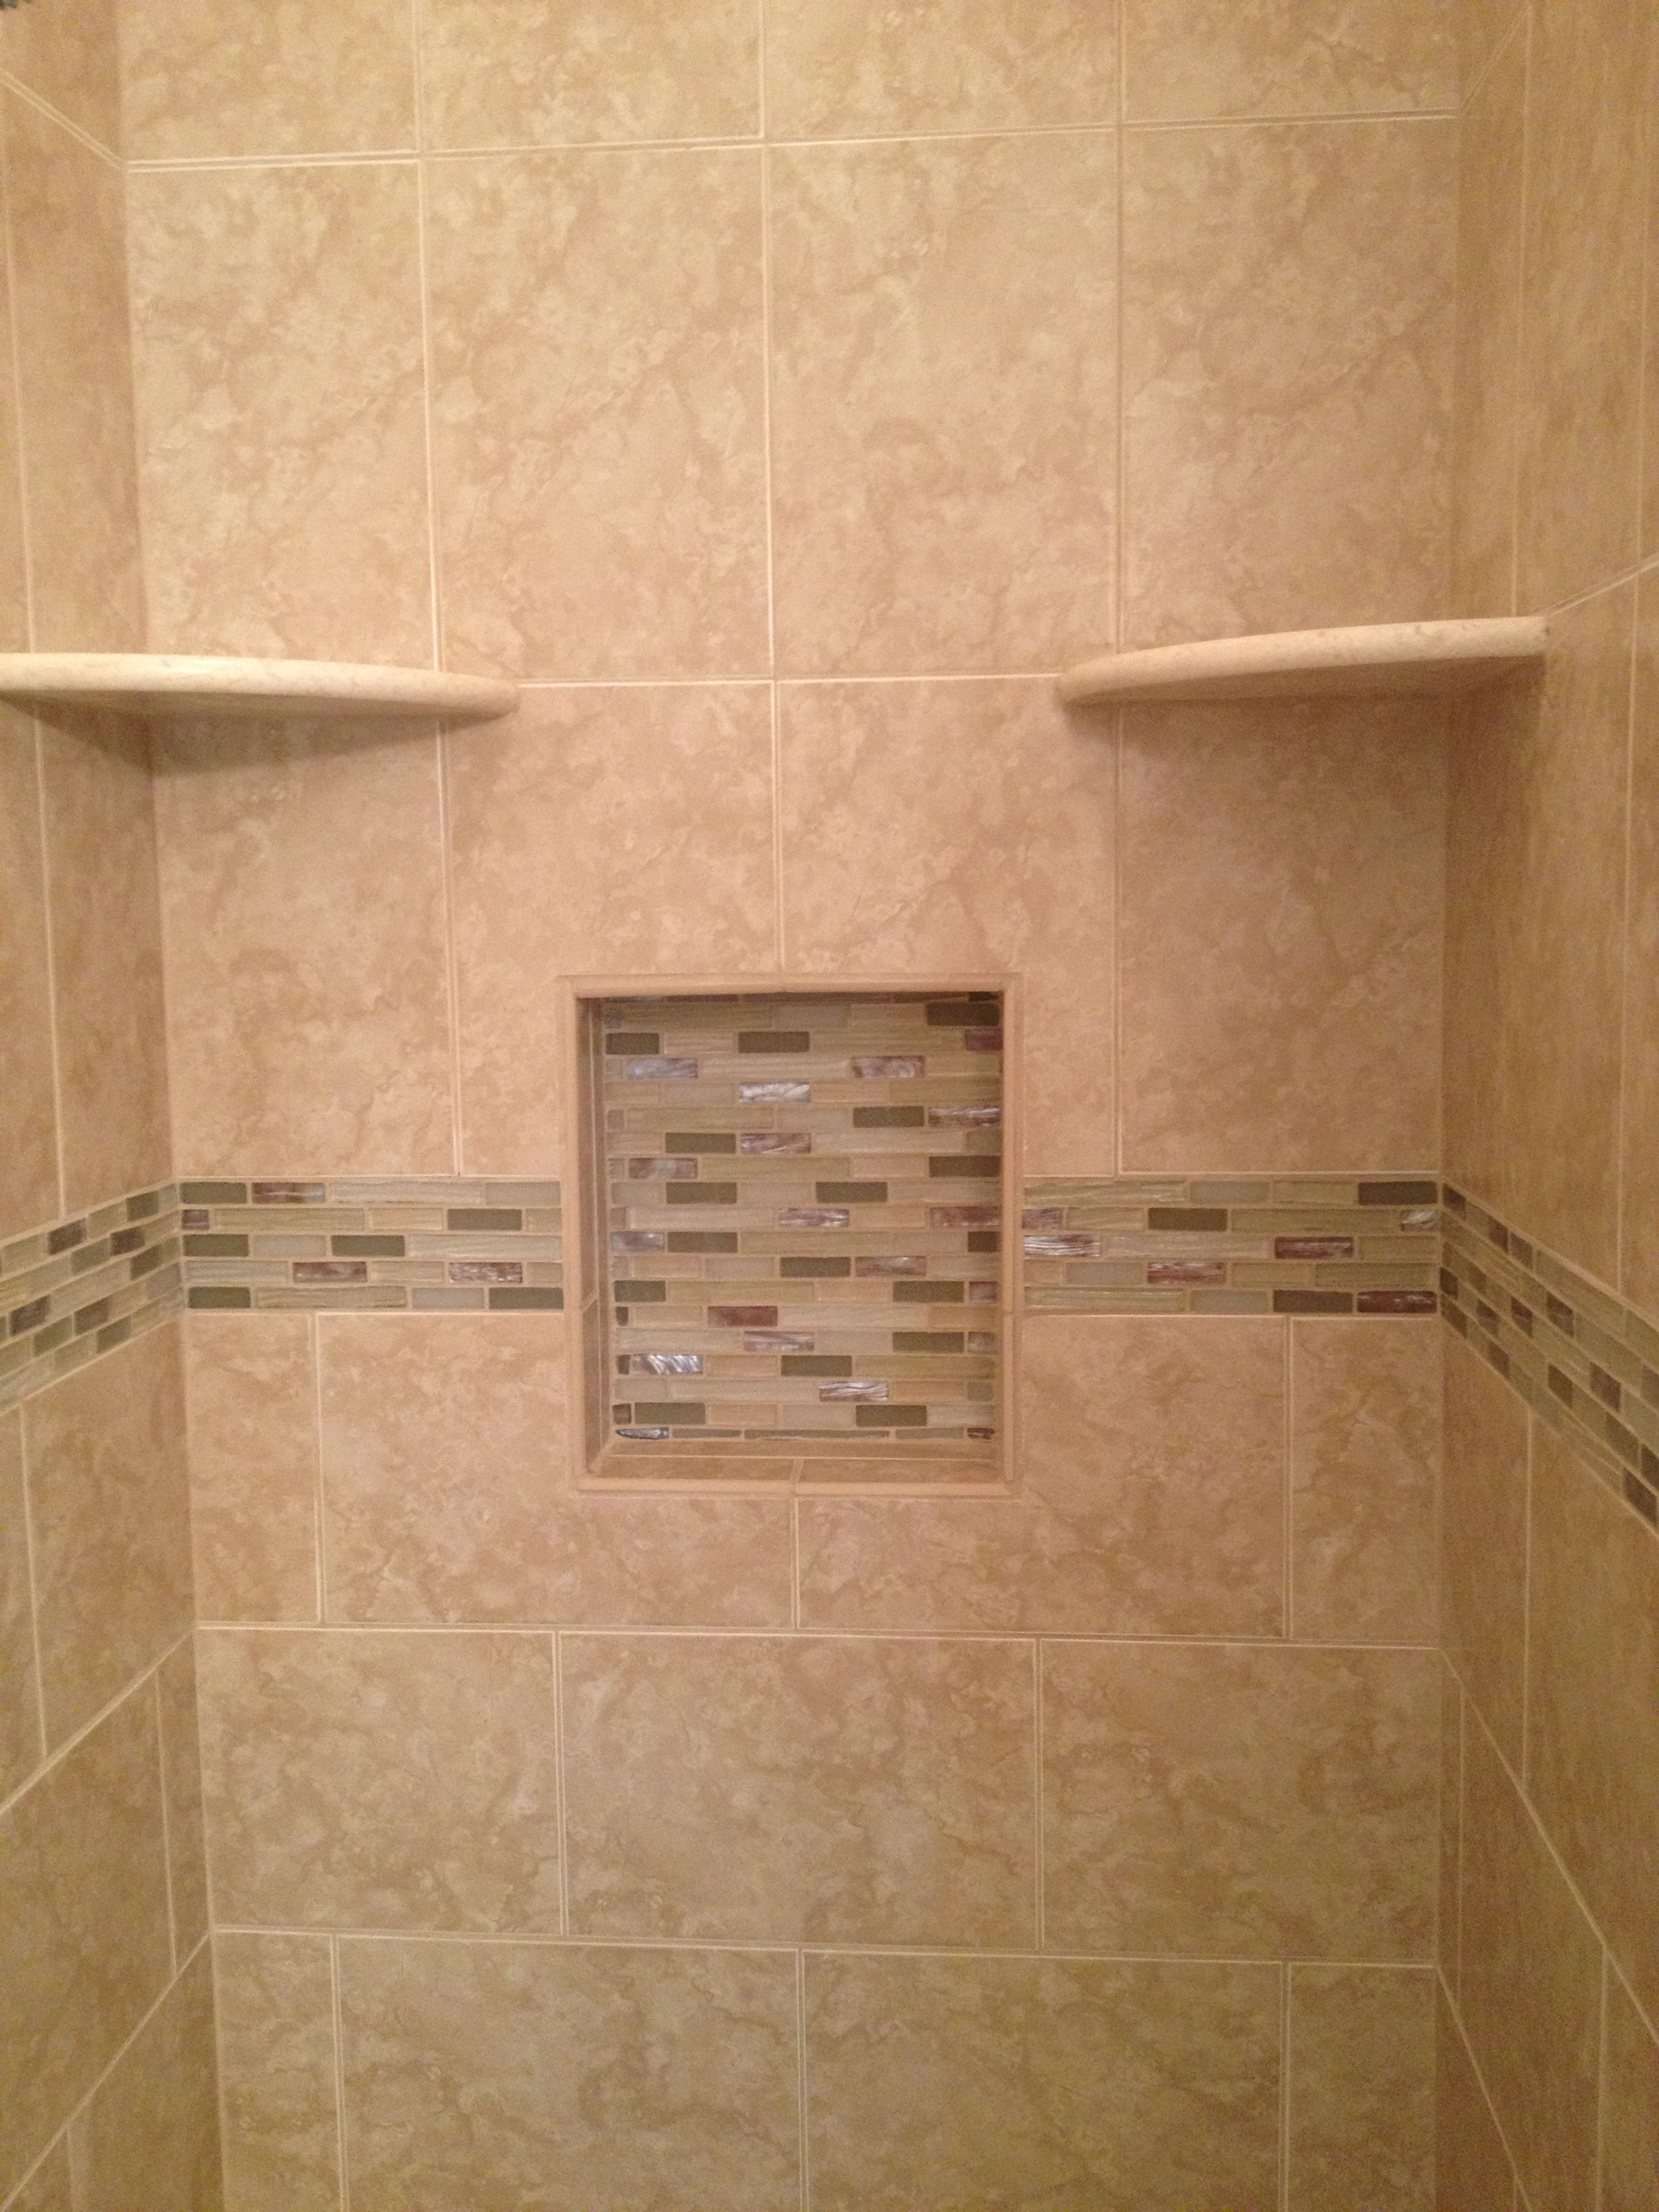 Beige tiled shower with two corner shelves and a niche